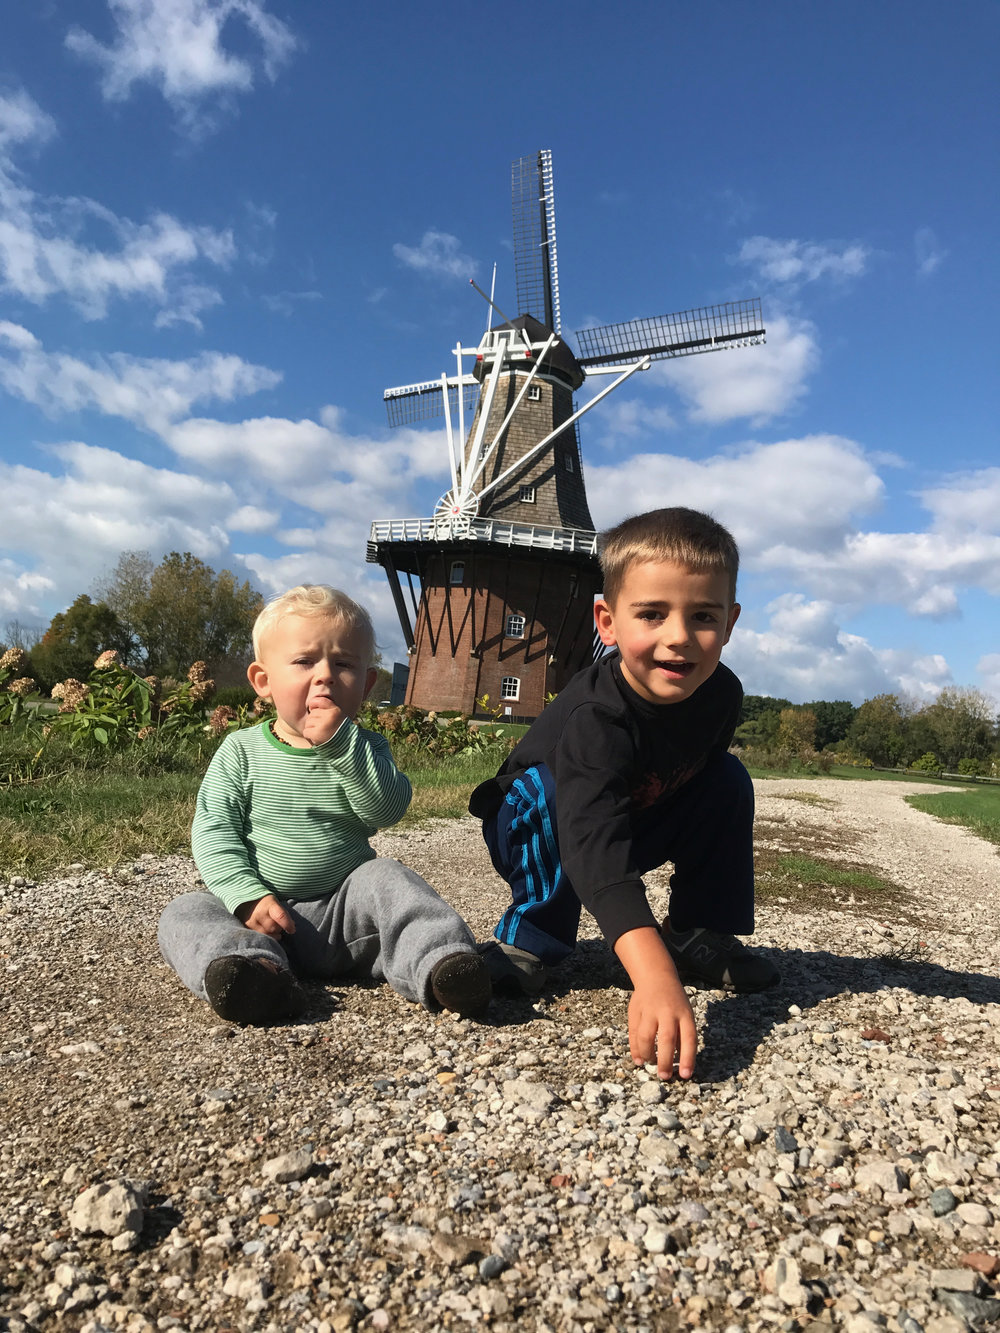 The boys exploring Windmill Island - October 2017 - Holland, Michigan